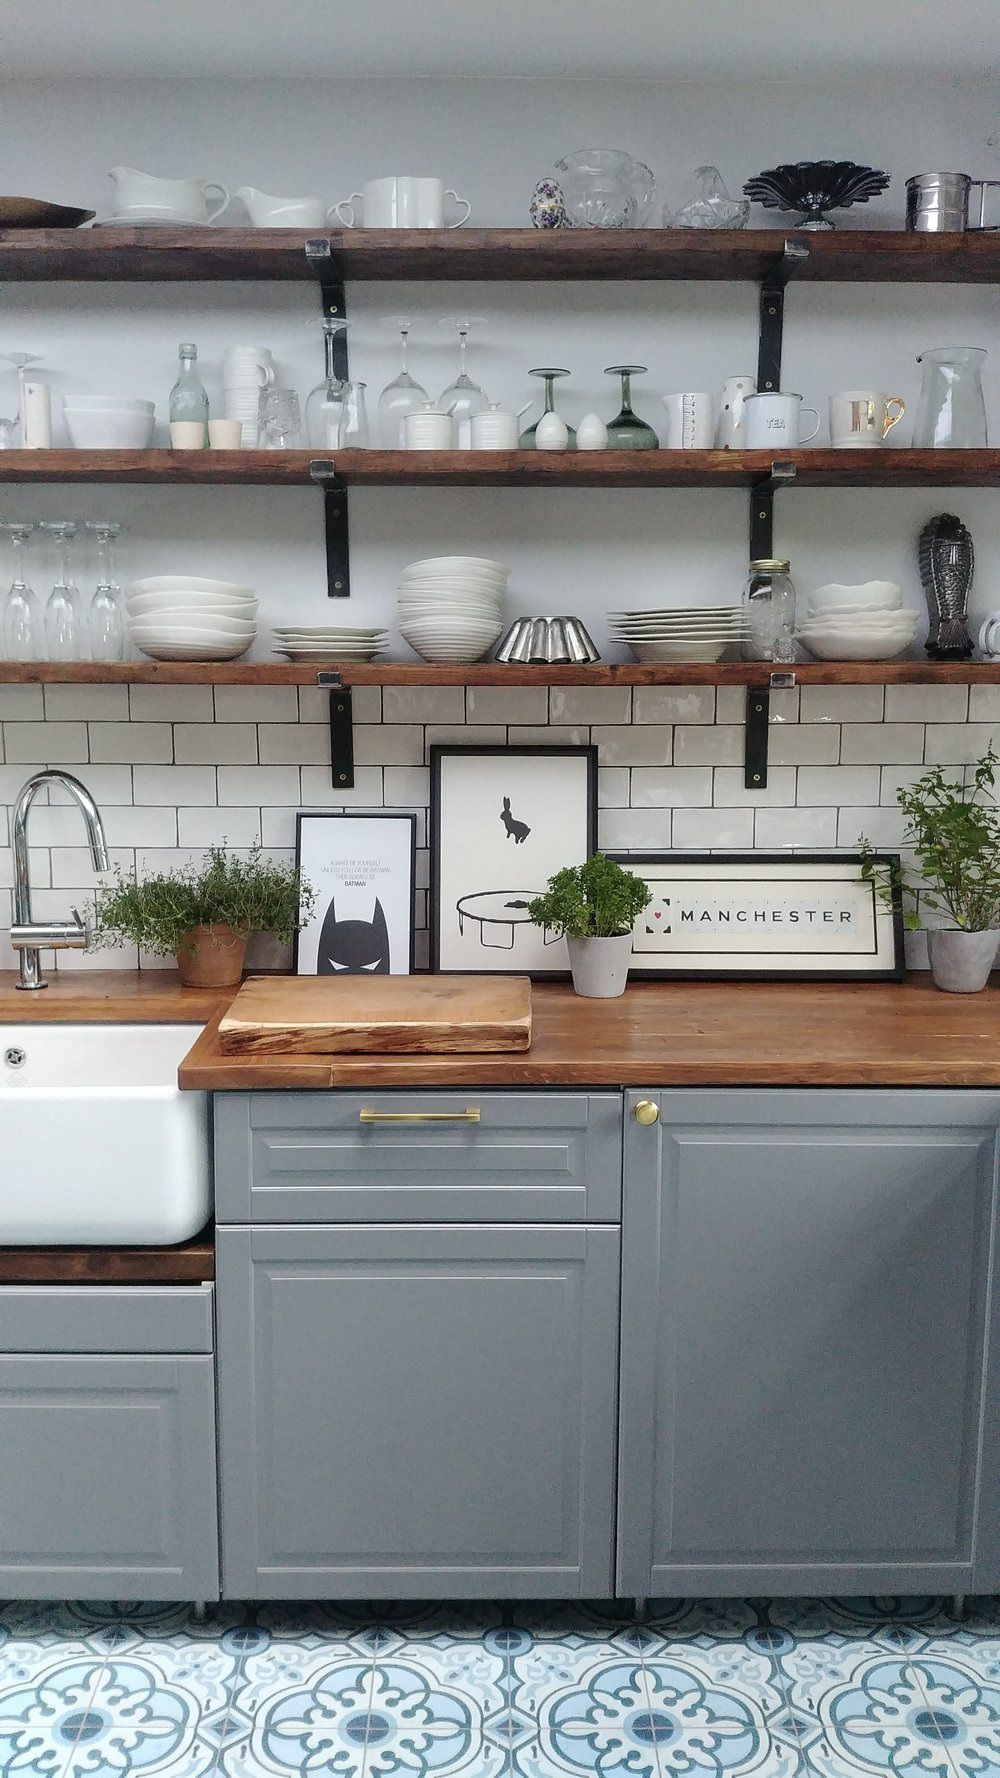 Extra Shelves For Ikea Kitchen Cabinets 2021 In 2020 Grey Kitchen Cupboards Ikea Bodbyn Kitchen Stained Kitchen Cabinets